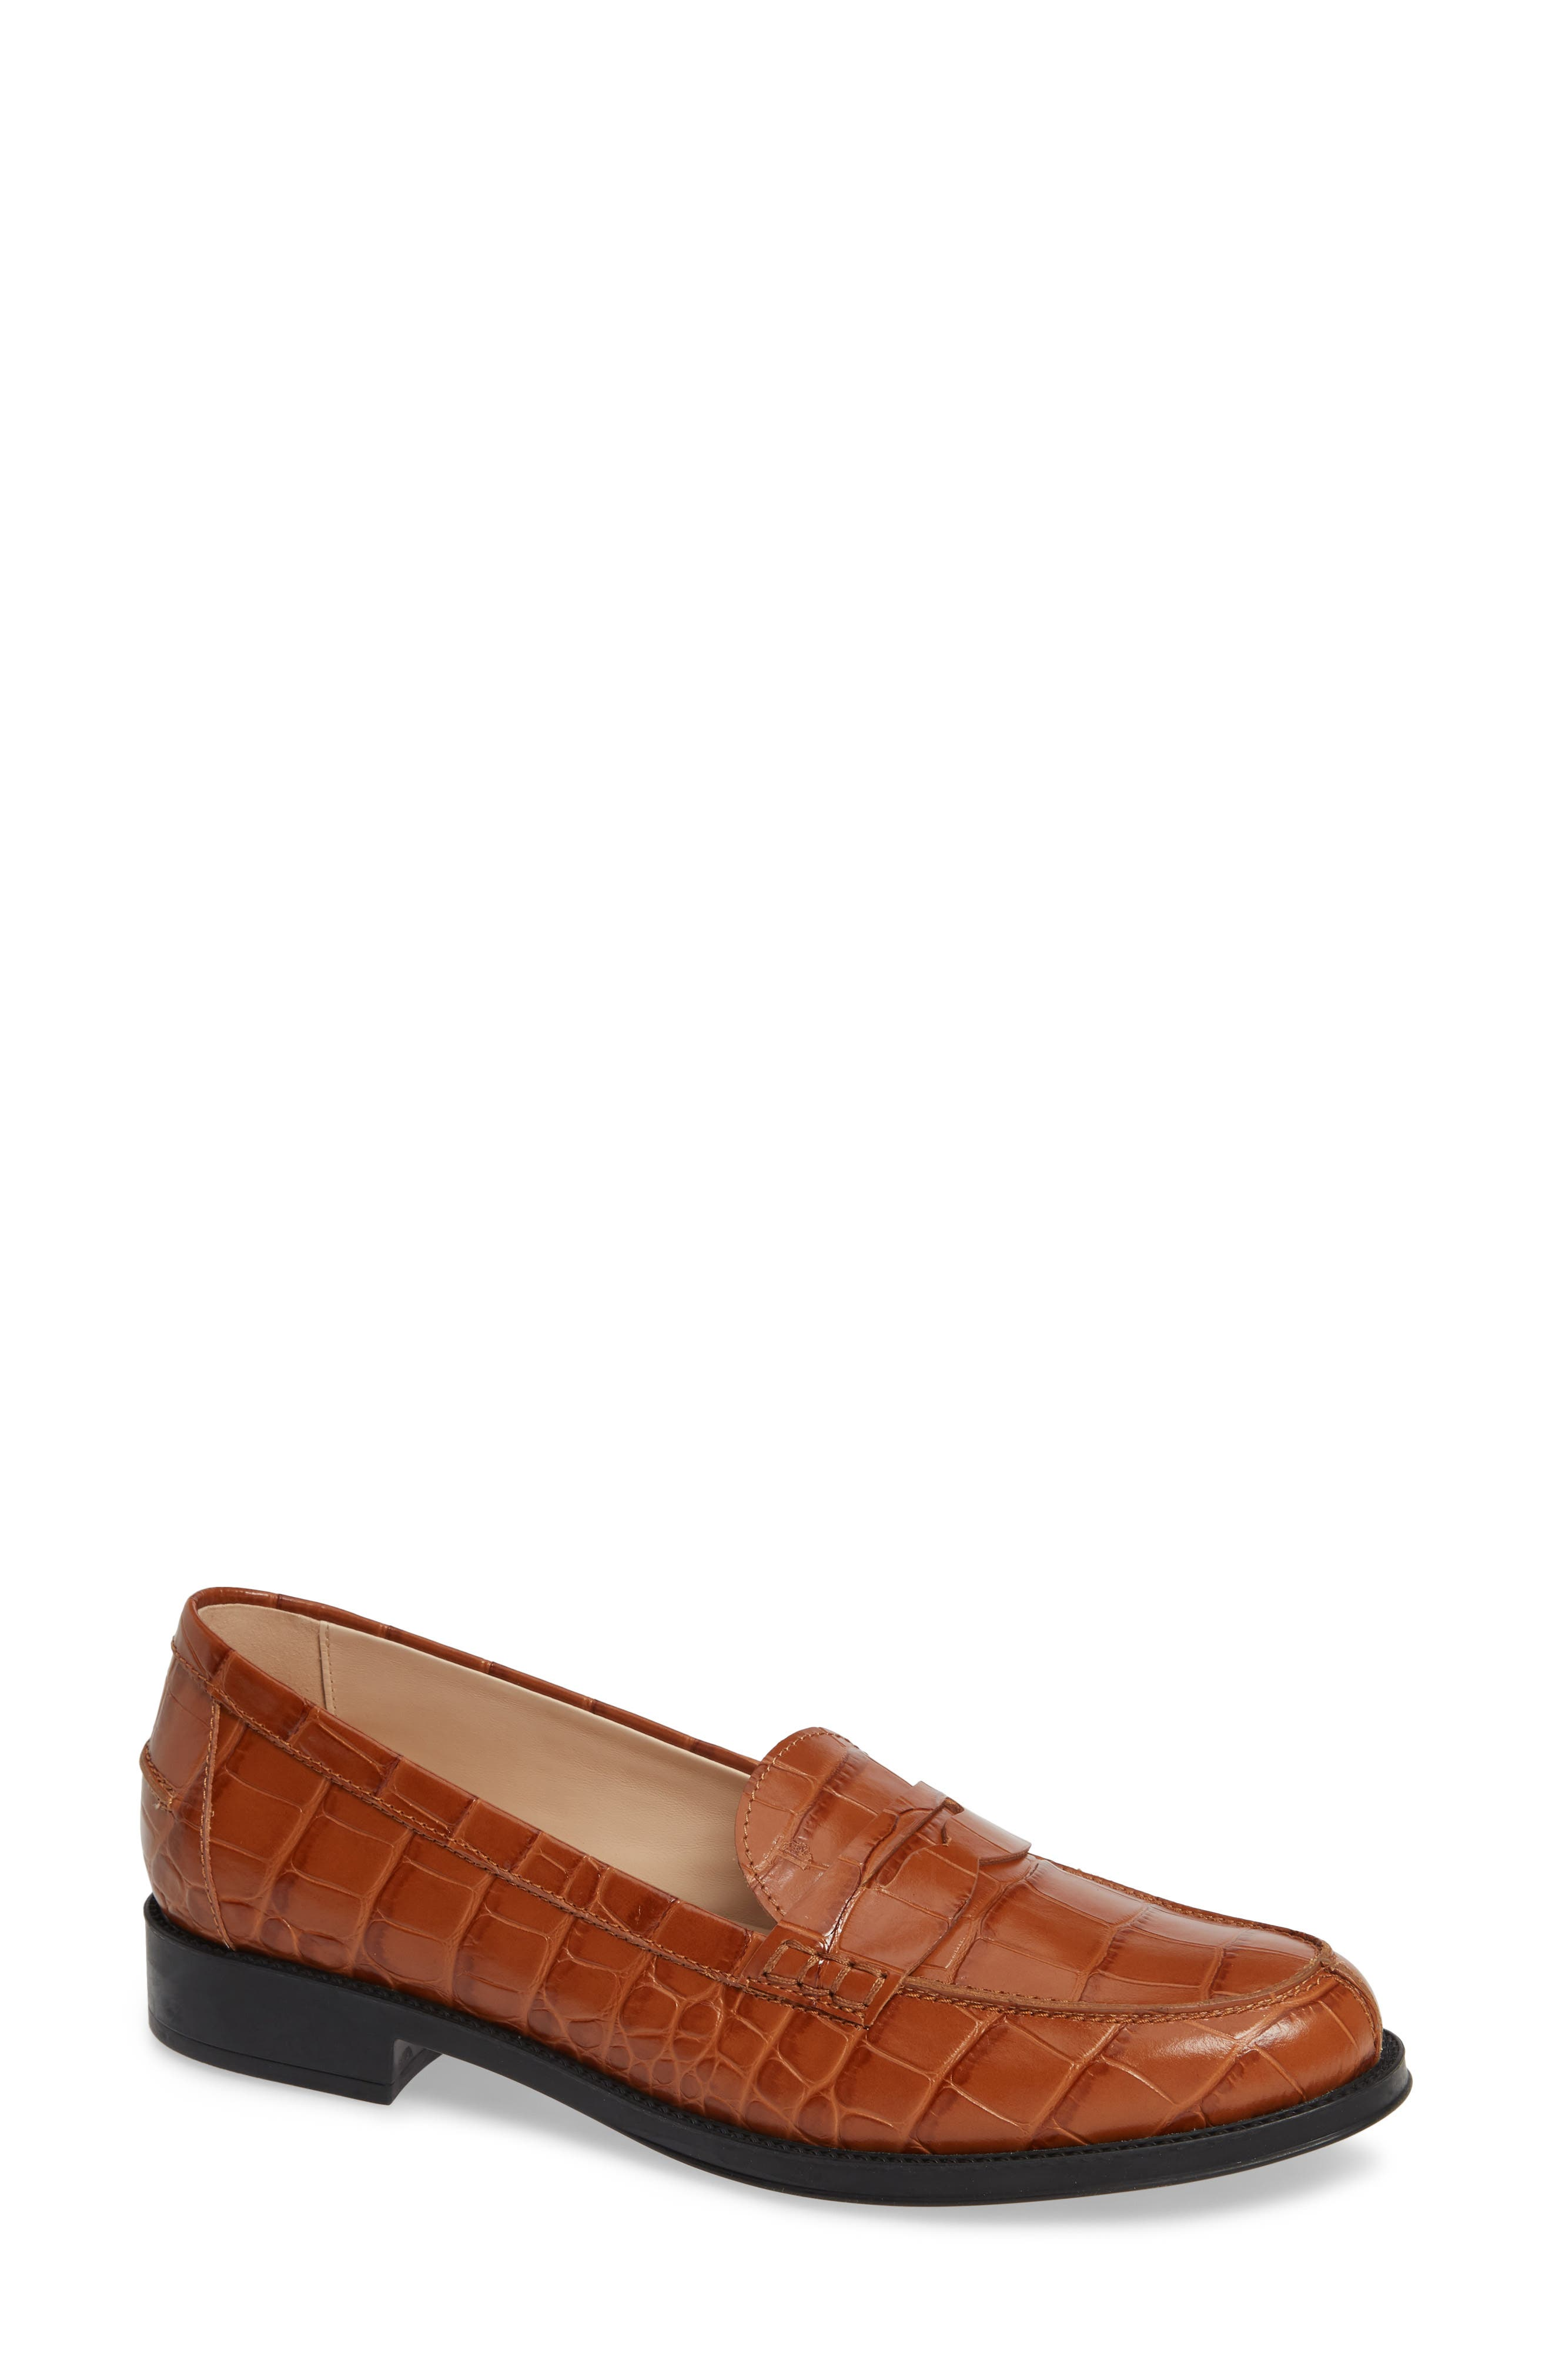 Penny Loafer,                             Main thumbnail 1, color,                             CARAMEL CROC